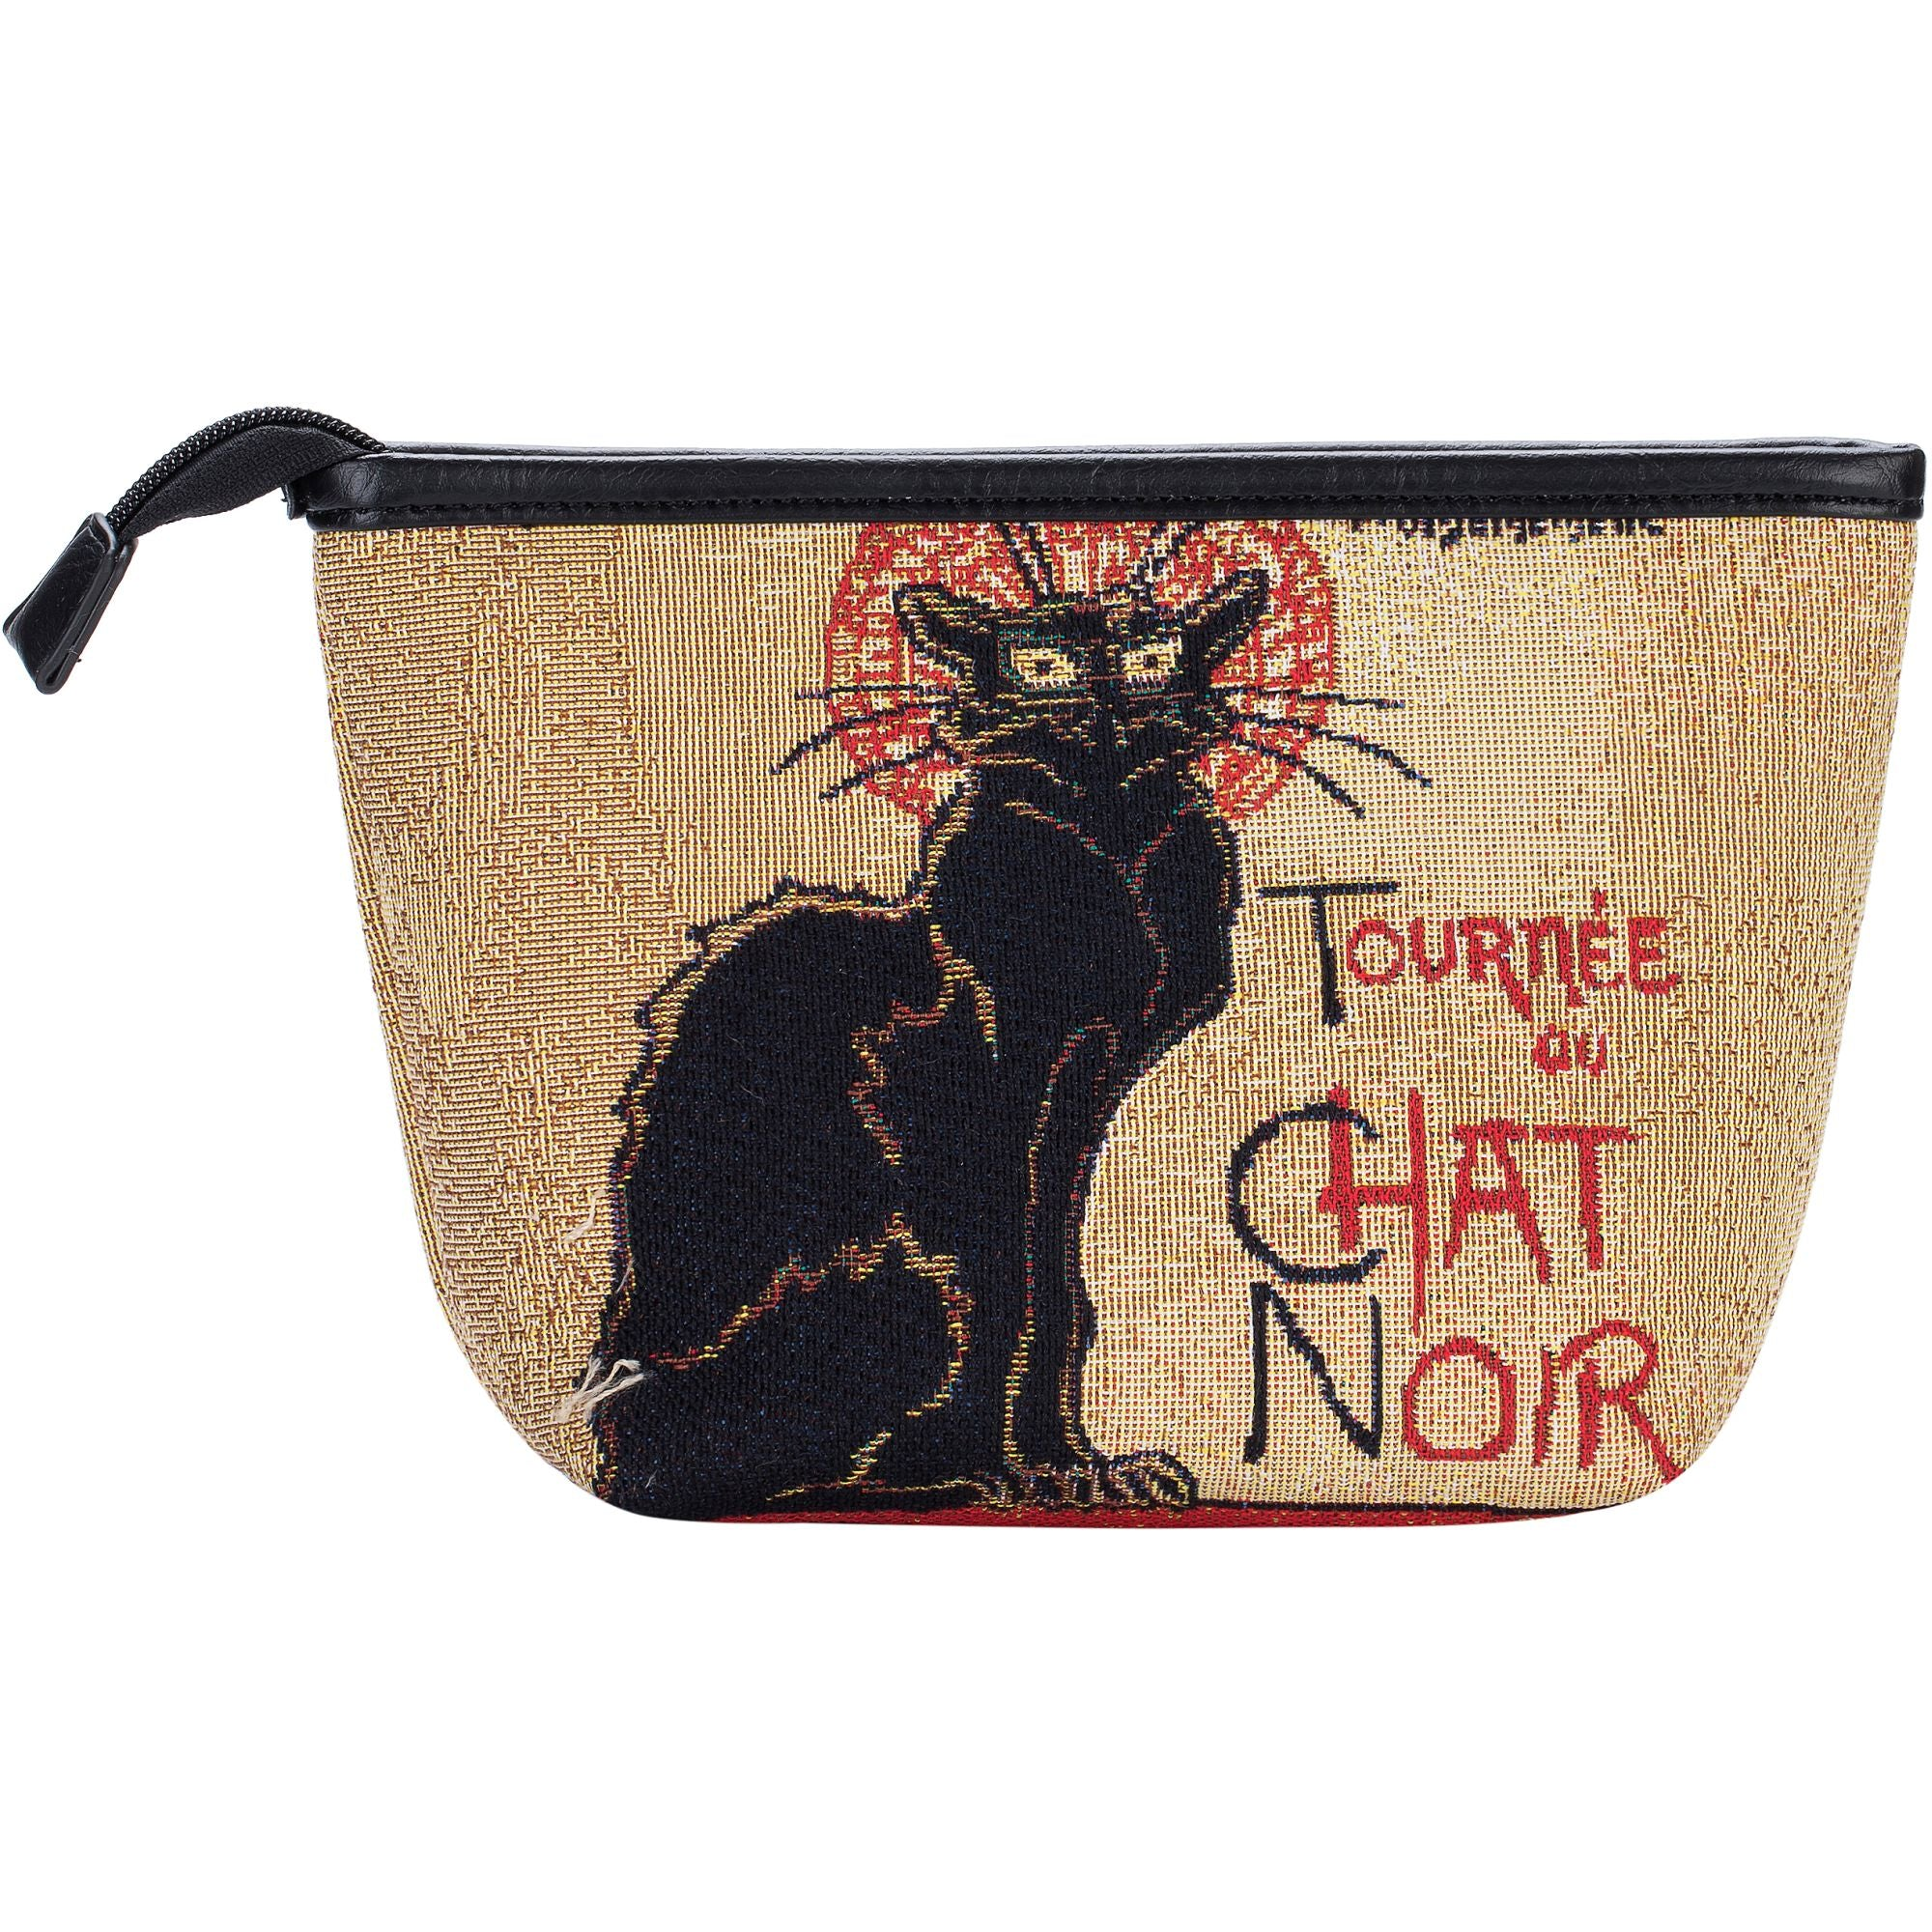 Chat Noir Cosmetics Pouch